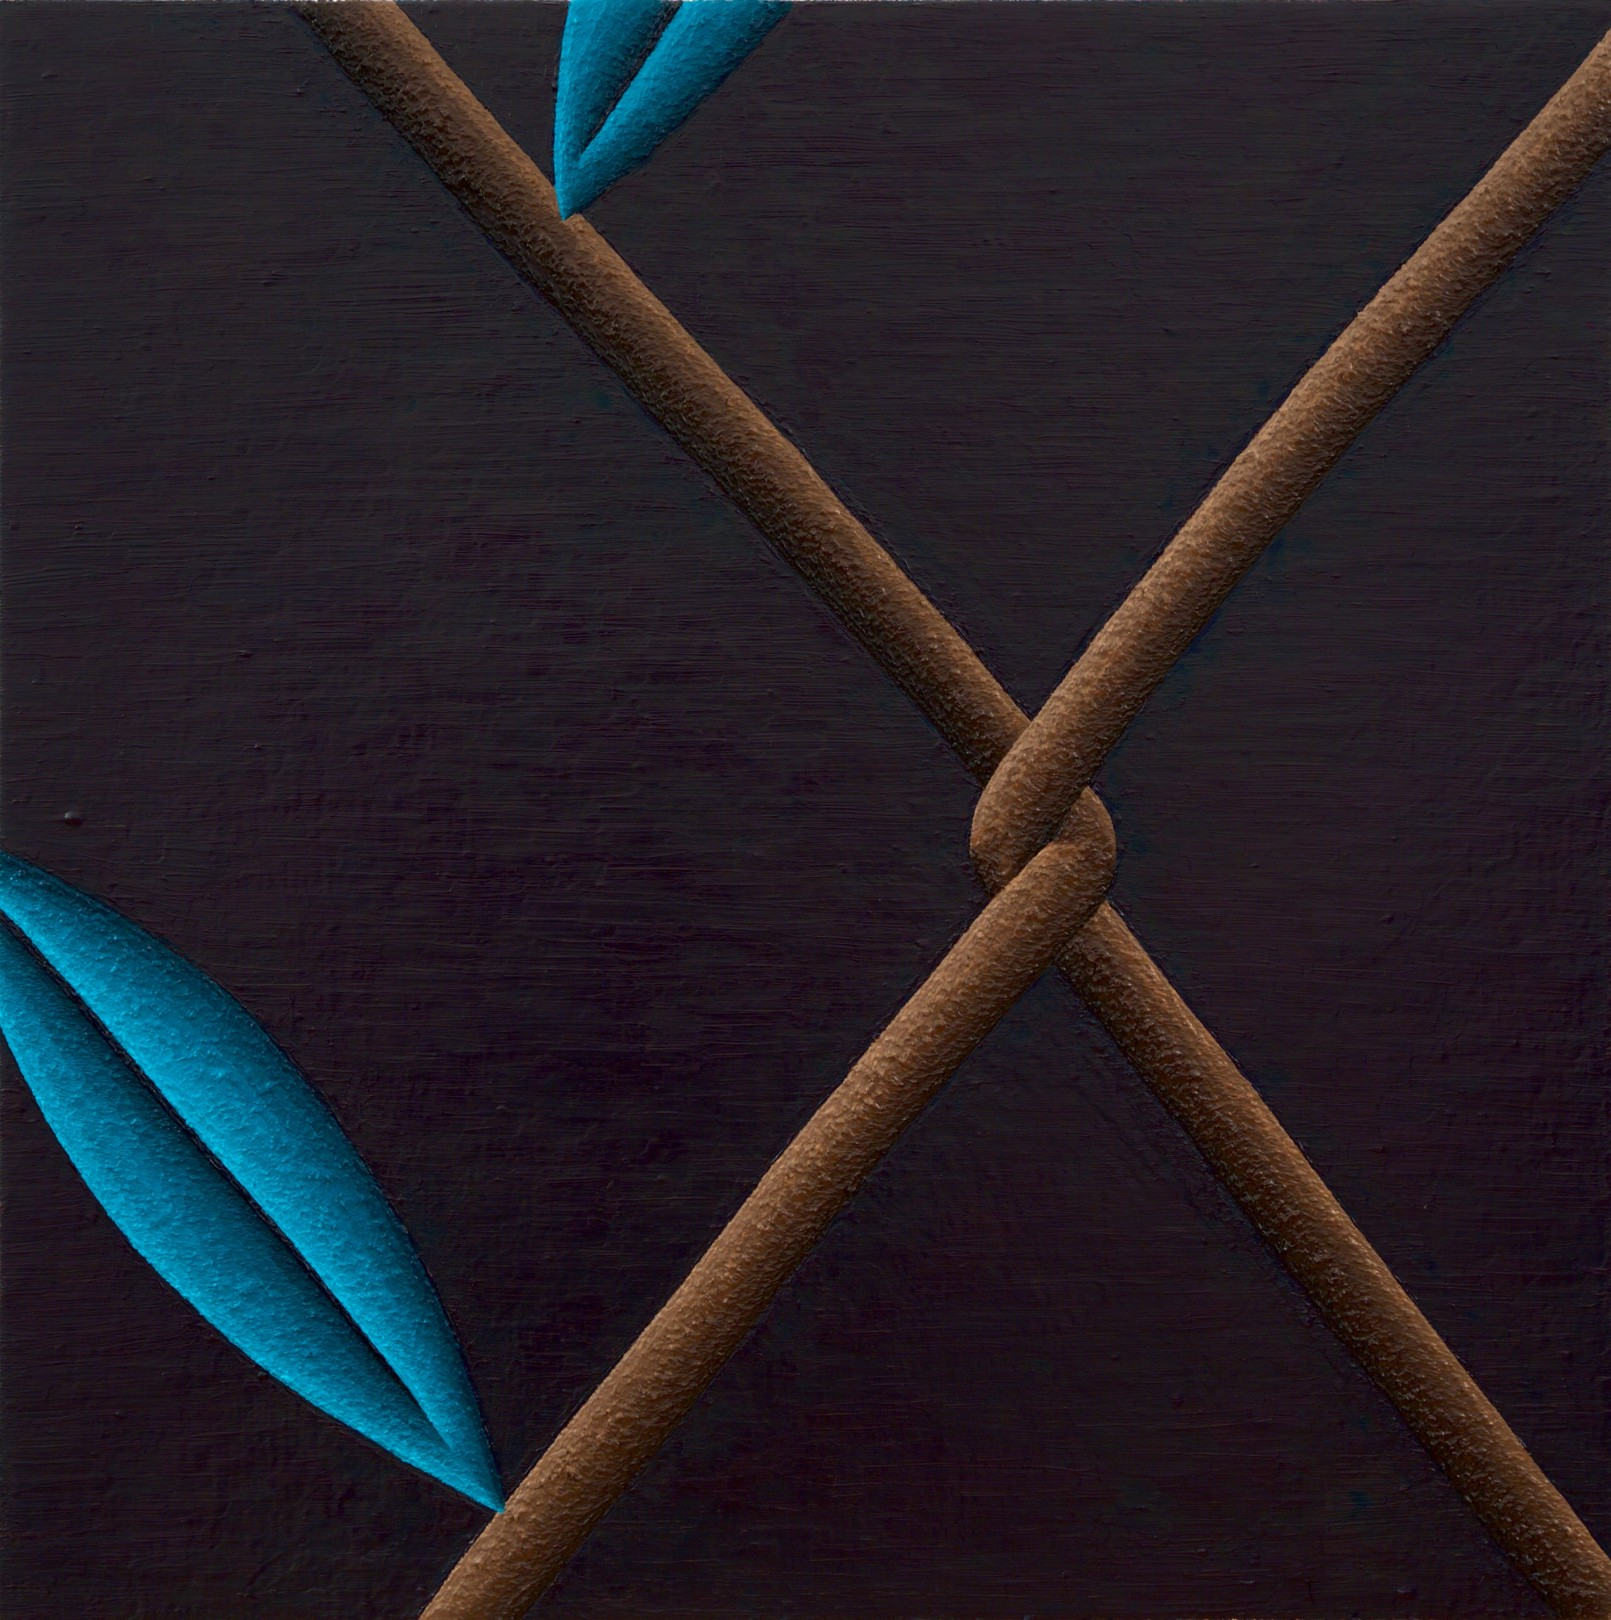 Bend 2, 2018 Oil on linen 76 x 76 cm. / 30 x 30 in.